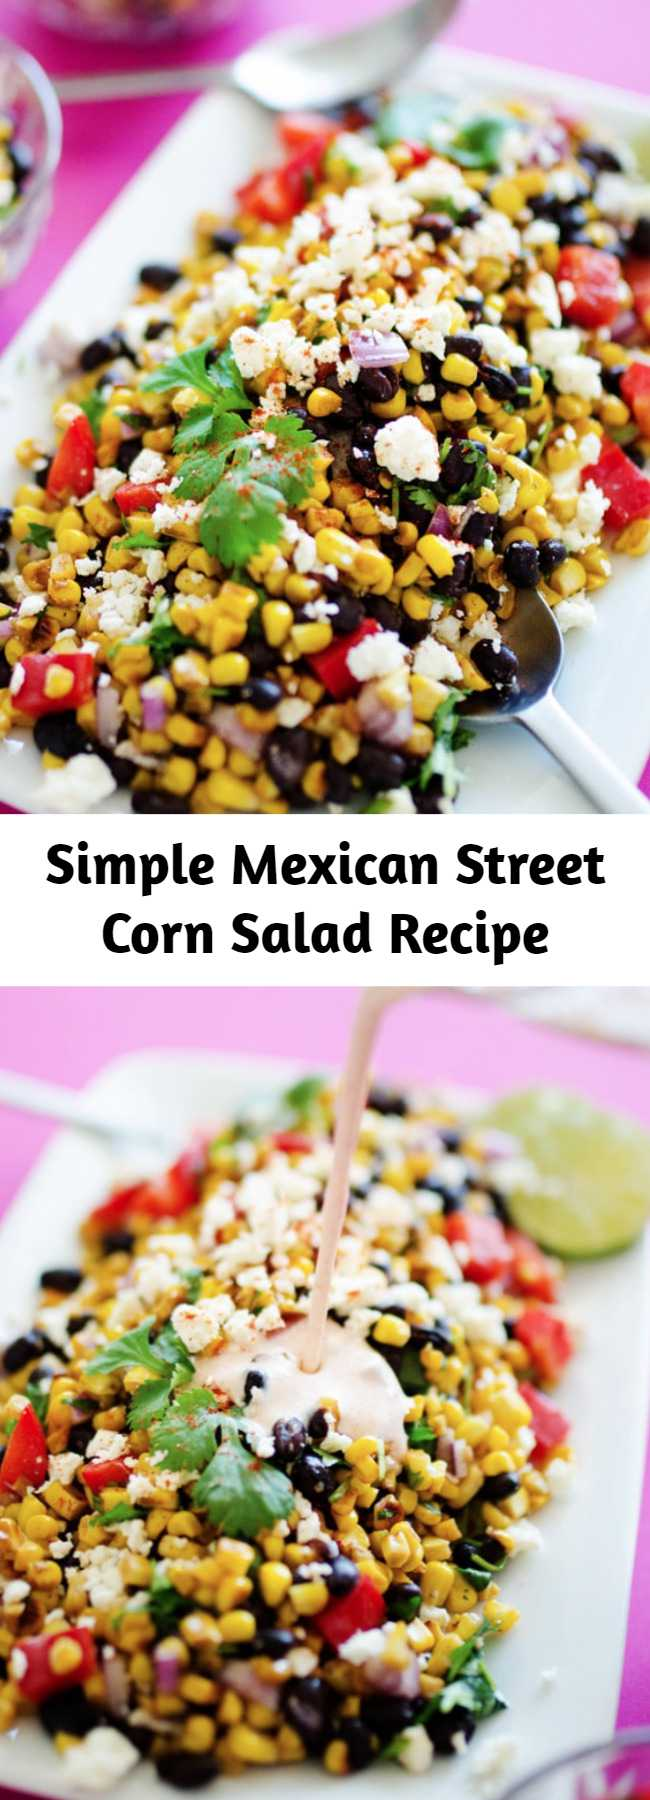 Simple Mexican Street Corn Salad Recipe - This Mexican Street Corn Salad is a healthy, simple take on elote, the delicious Mexican street vendor version of corn on the cob! #vegetarianrecipes #mexicanrecipes #texmex #healthy #dinner #potluck